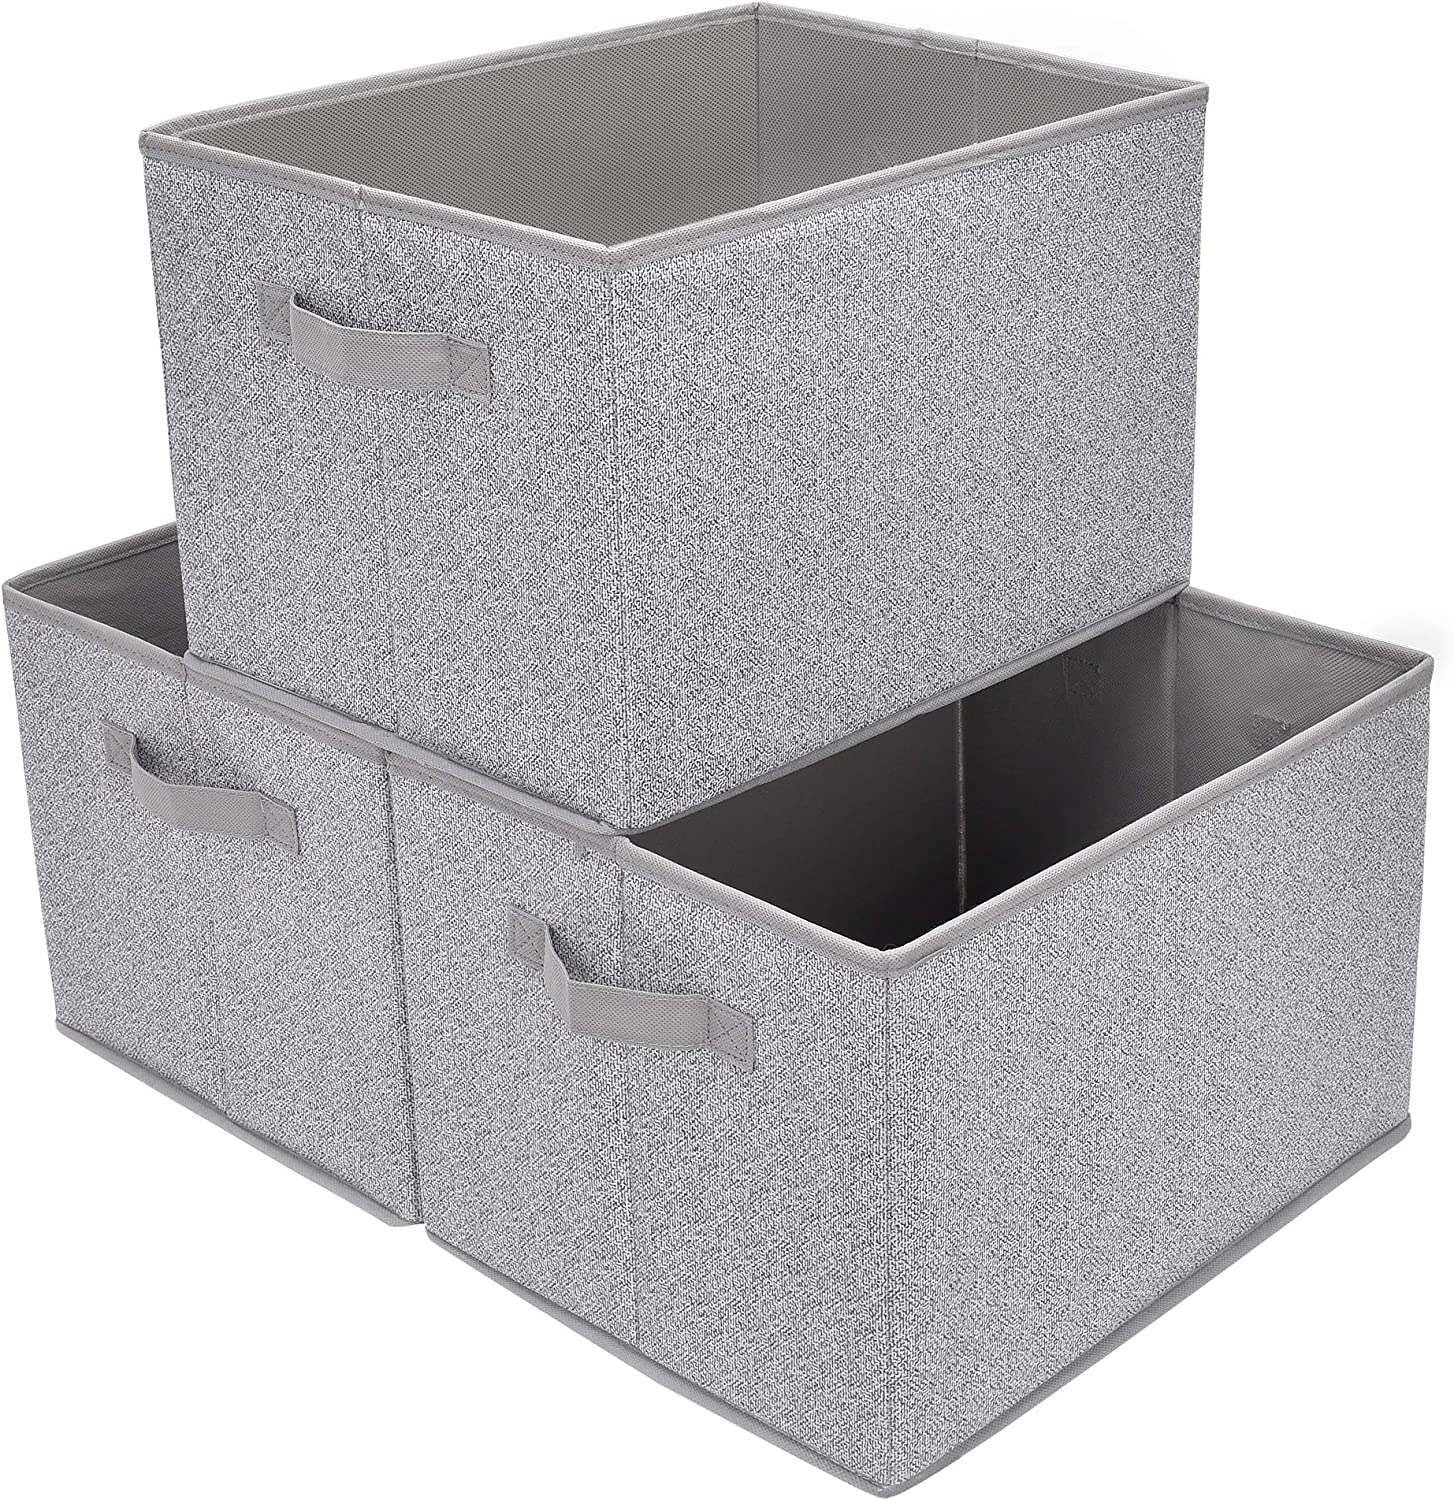 GRANNY SAYS Storage Basket for Shelves, Fabric Closet Storage Bins Cube Box with Handle Home Office Fabric Organizer, Jumbo, Gray, 3-Pack